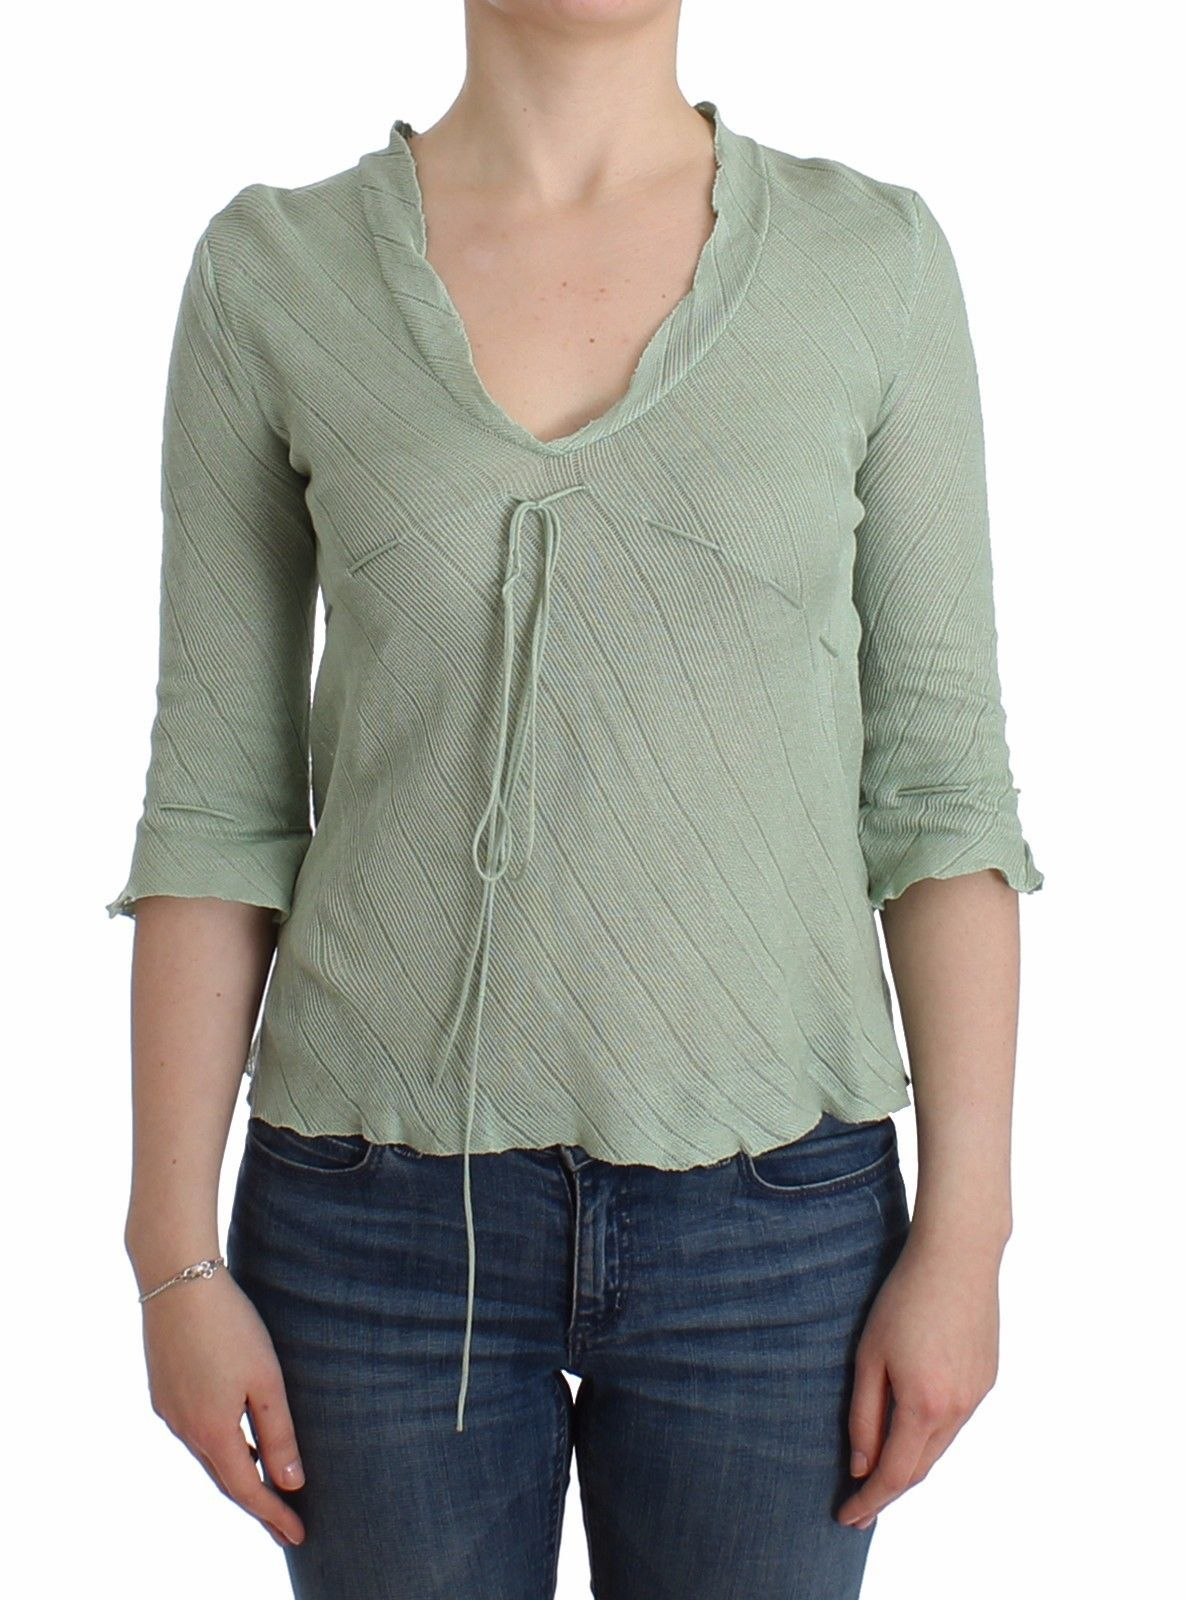 Ermanno Scervino Women's Knit Sweater Green SIG12013 - IT44 | M